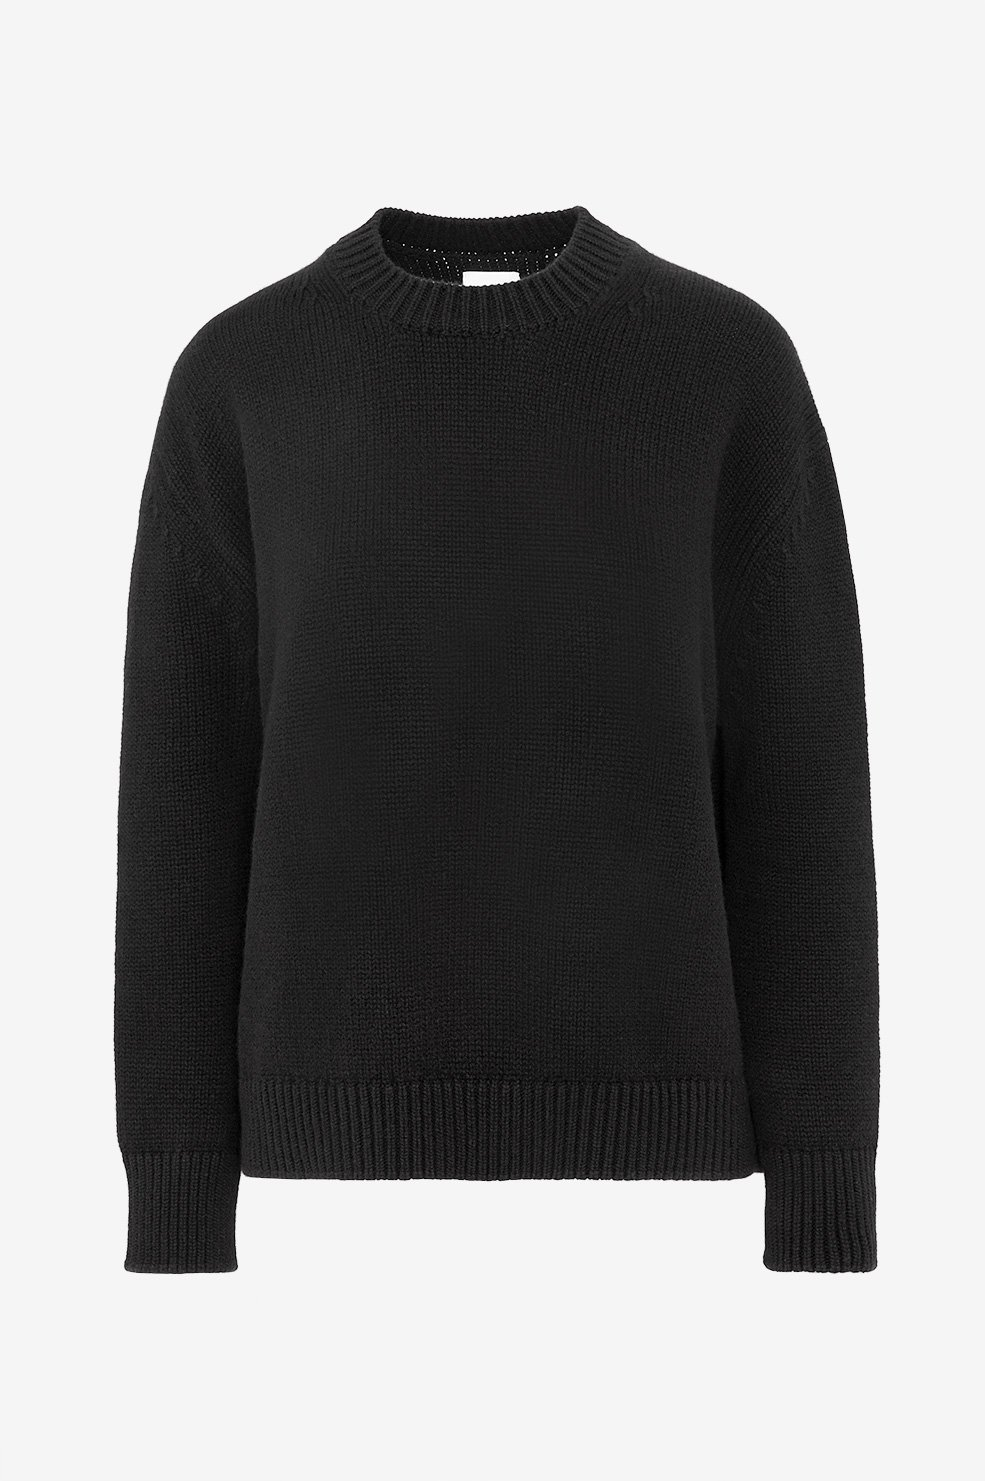 Cashmere Sweater, Anine Bing